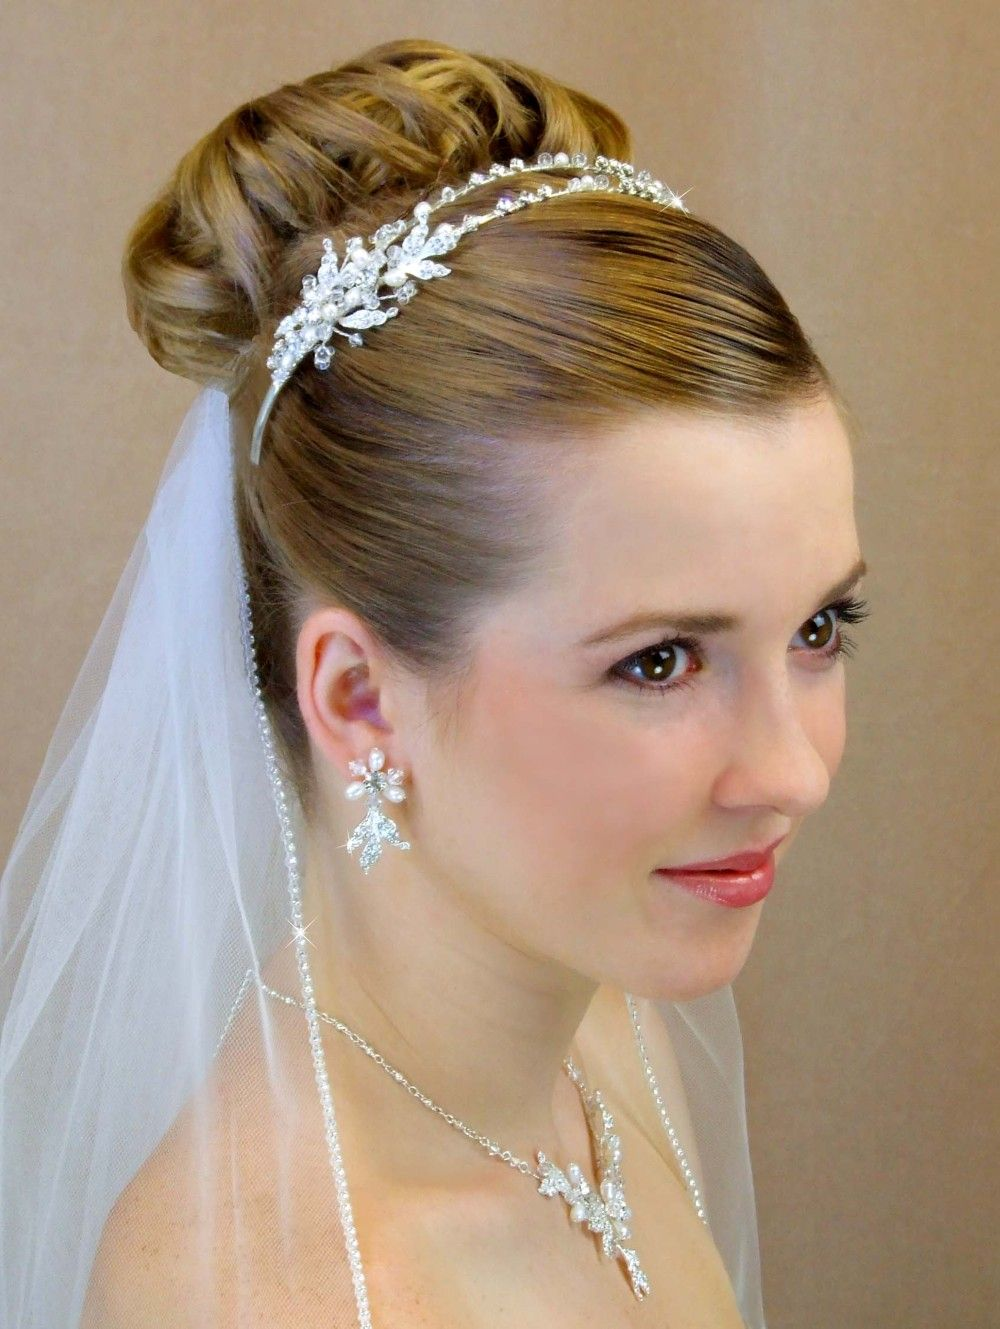 Bridal tiaras and veils - Wedding Veils And Headpieces Related Posts Wedding Veils Part 1 Traditional Gold Wedding Gown